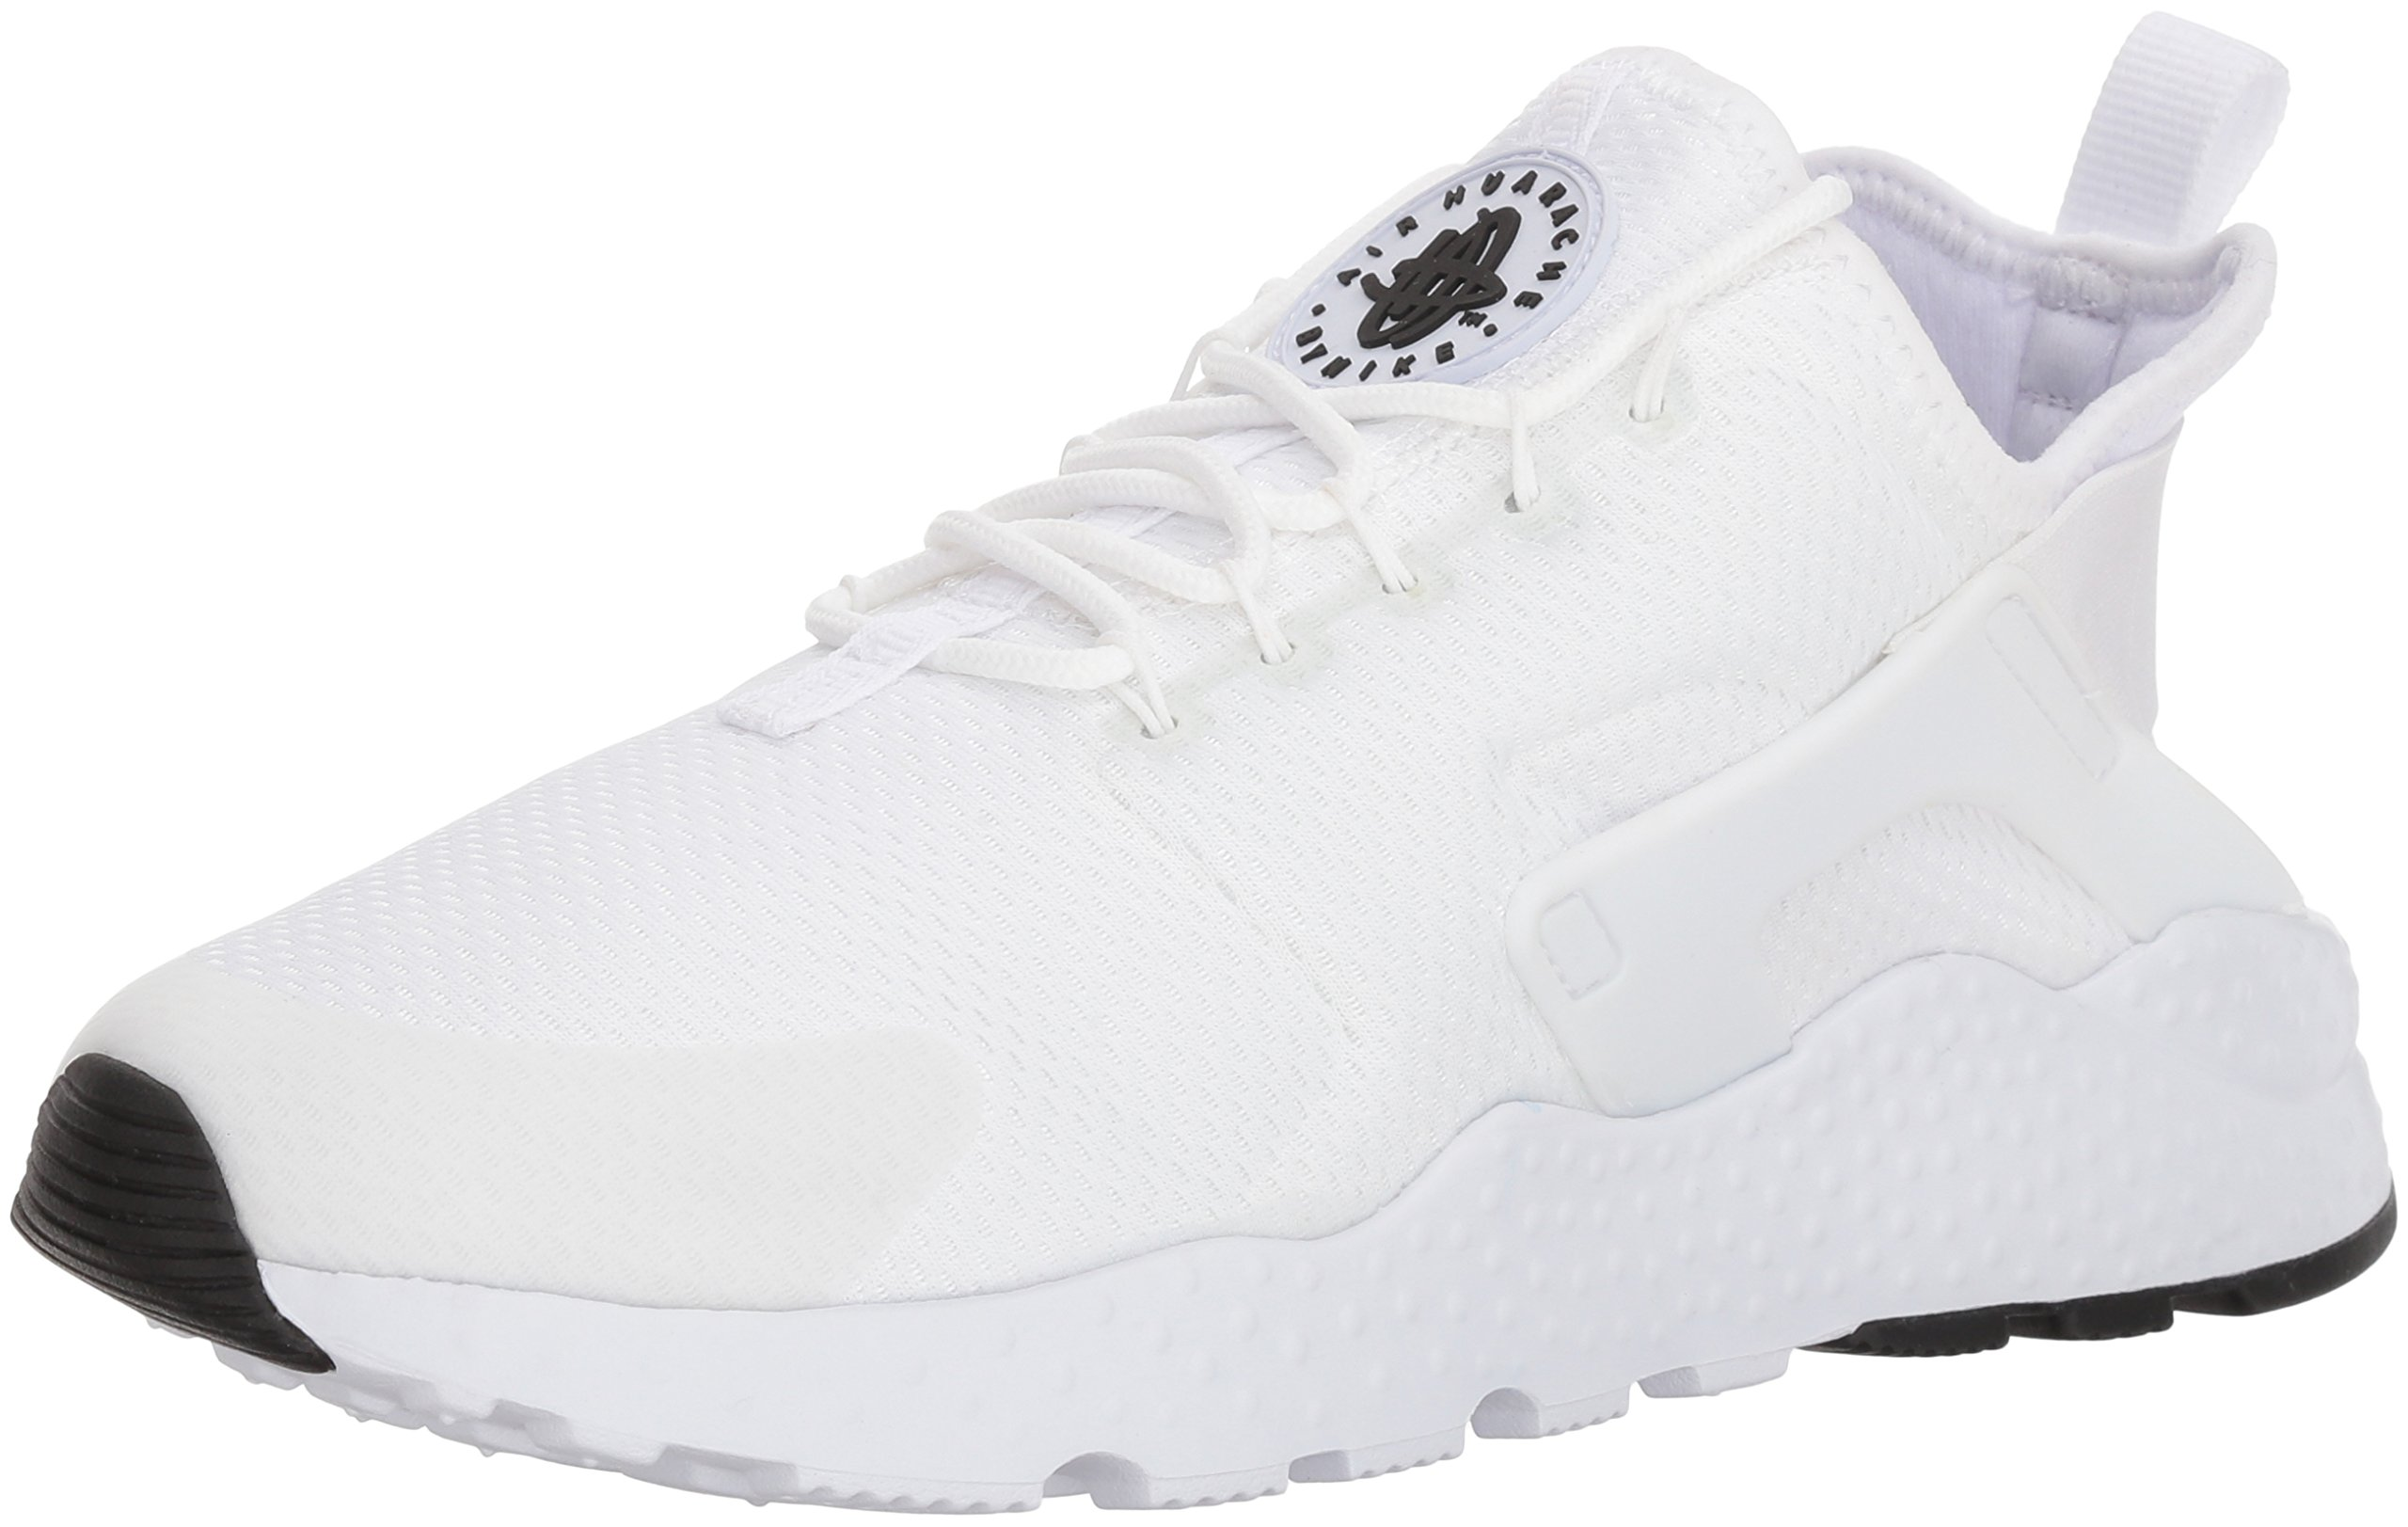 59c39efcf96d7 Galleon - Nike Air Huarache Run Ultra Women s Running Shoes  White White-White-Black 819151-102 (12 B(M) US)